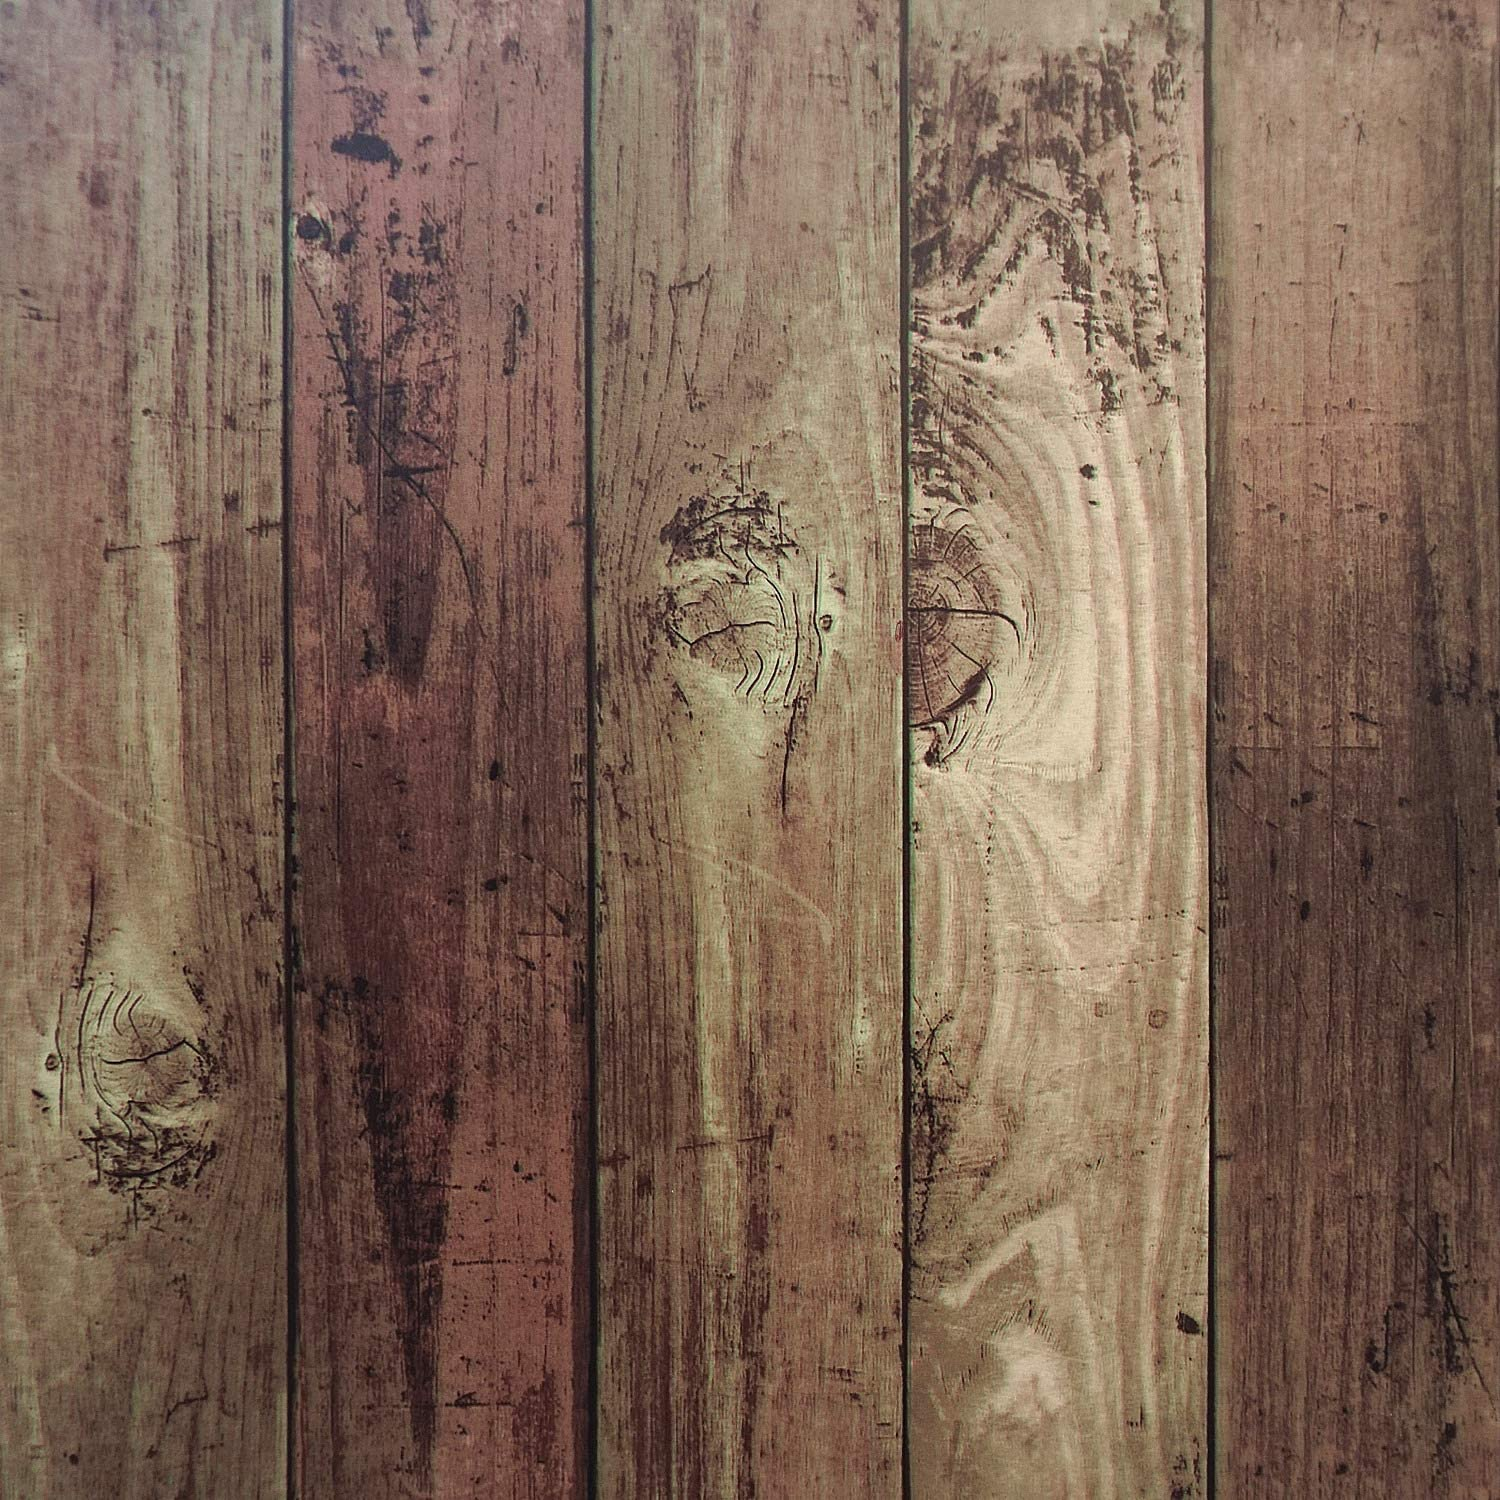 Wood Peel And Stick Film Vintage Wood Panel Wallpaper Self Adhesive Removable Wall Covering Decorative Faux Distressed Wood Plank Wooden Grain Vinyl Decal Roll 78 7 X17 7 Amazon Com